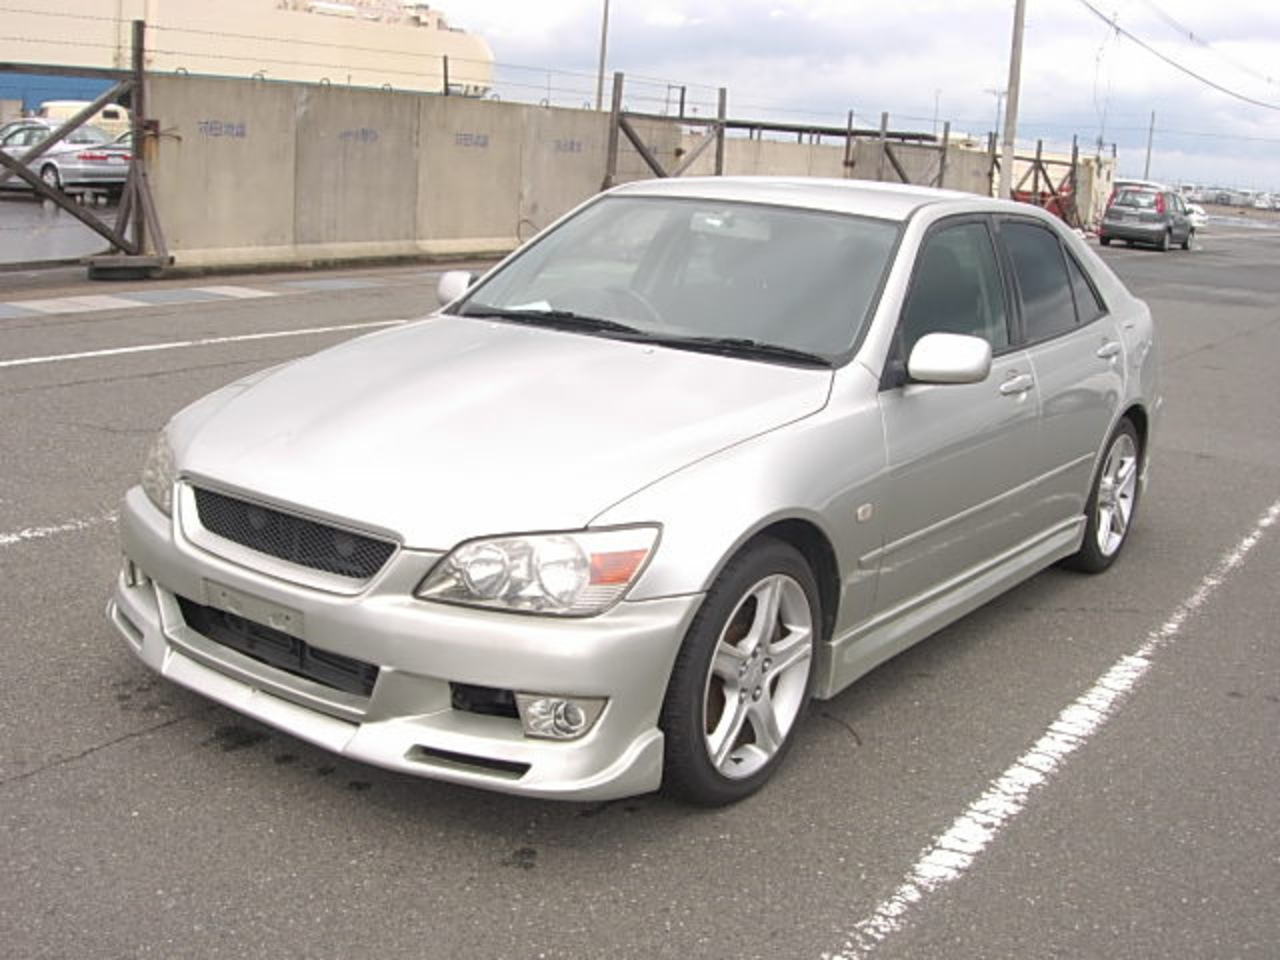 Toyota Altezza RS200 | Flickr - Photo Sharing!